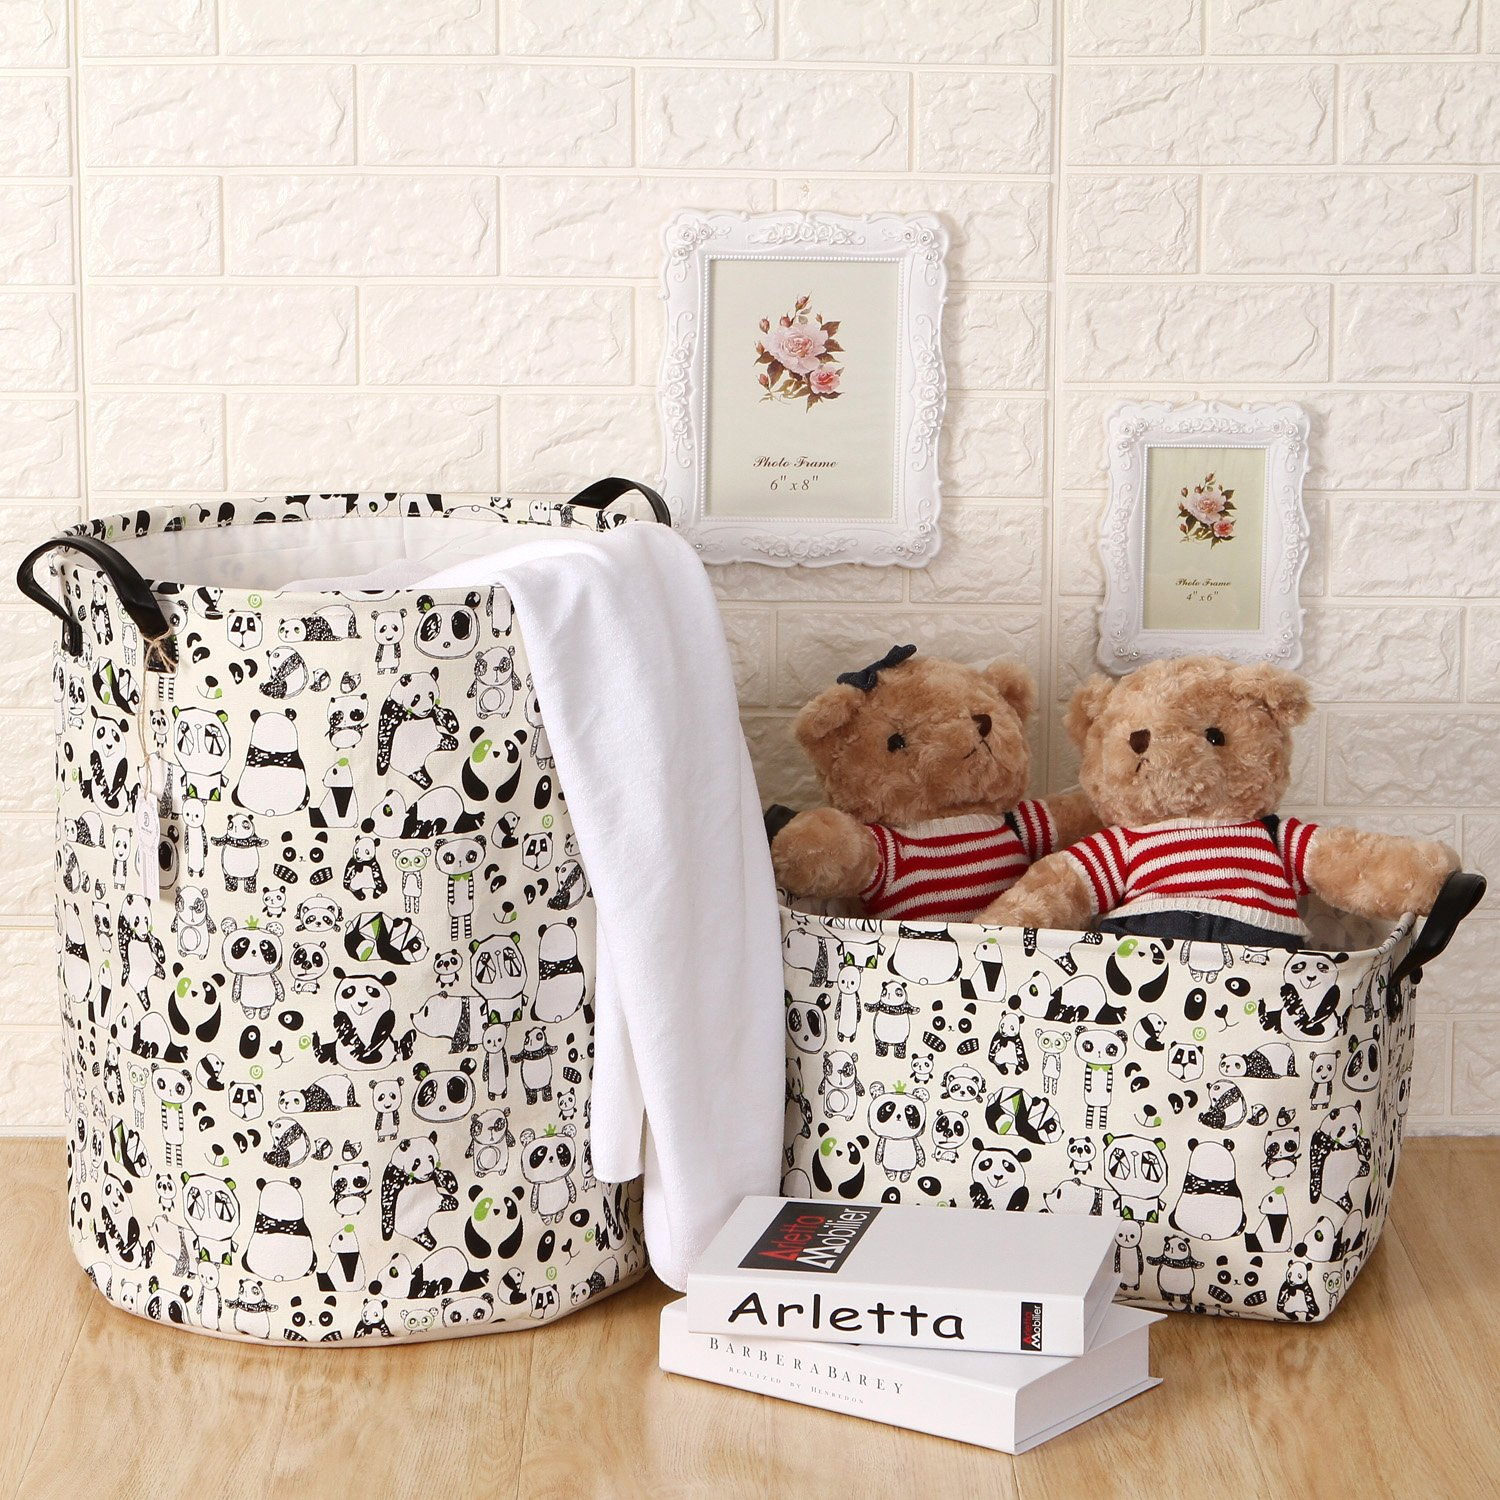 Sea Team 19.7'' Large Size Stylish Panda Design Canvas & Linen Fabric Laundry Hamper Storage Basket with Premium PU Leather Handles for Kid's Room, Drawstring Cover with Waterproof Coating by Sea Team (Image #7)